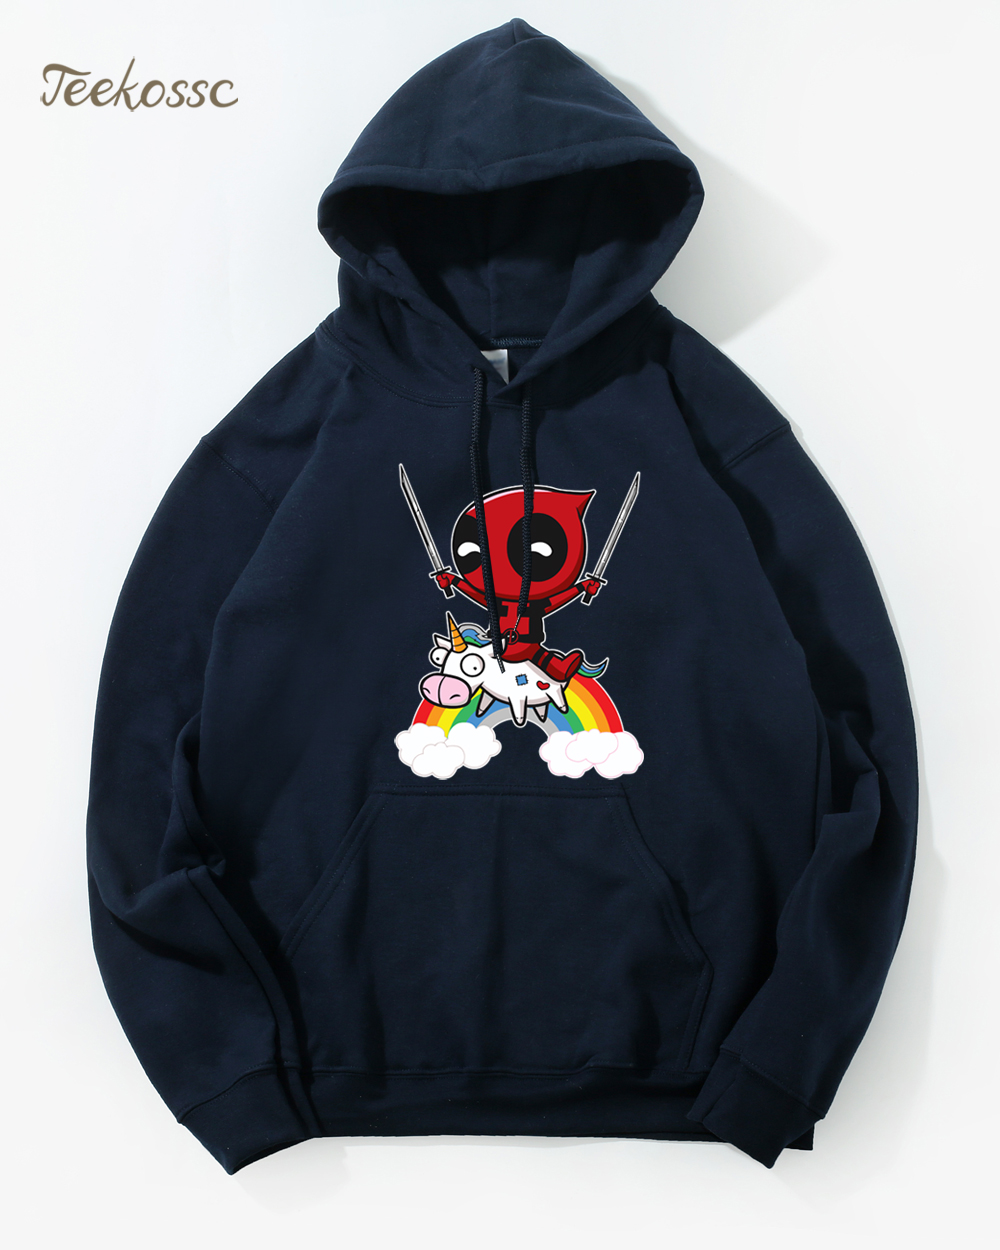 Deadpool  Hoodie Men Super Hero Funny Hoodies Mens 2018 Winter Autumn Deal Pool Hooded Sweatshirt Black Loose Fit Hoody